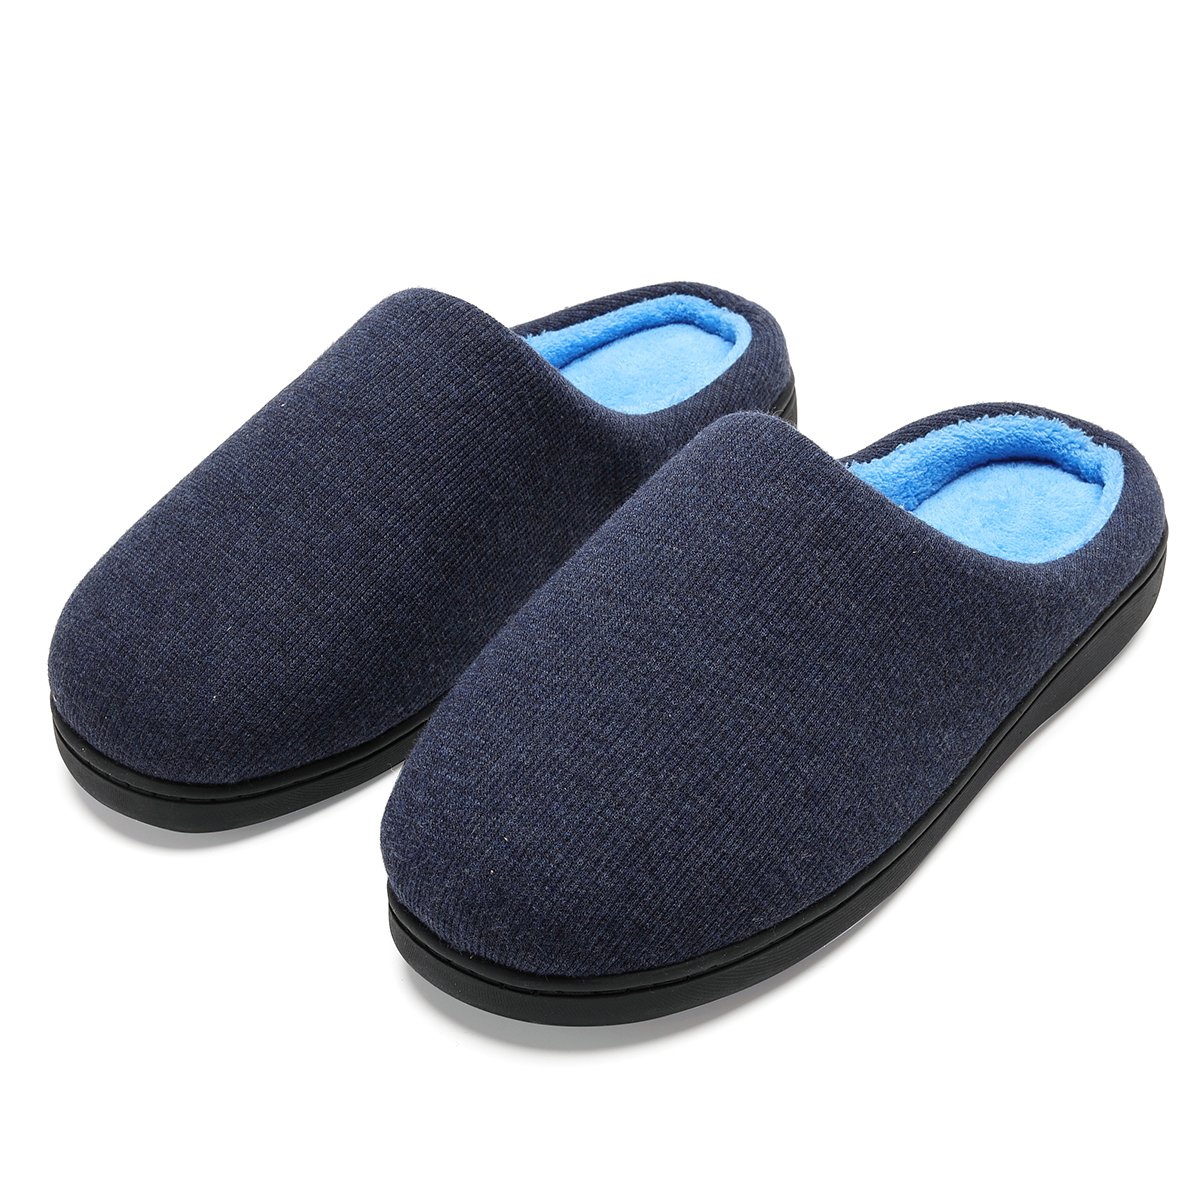 INFLATION Men's Comfortable House Shoes Women's Two-Tone Memory Foam Breathable Knitted Cotton Slippers for Family